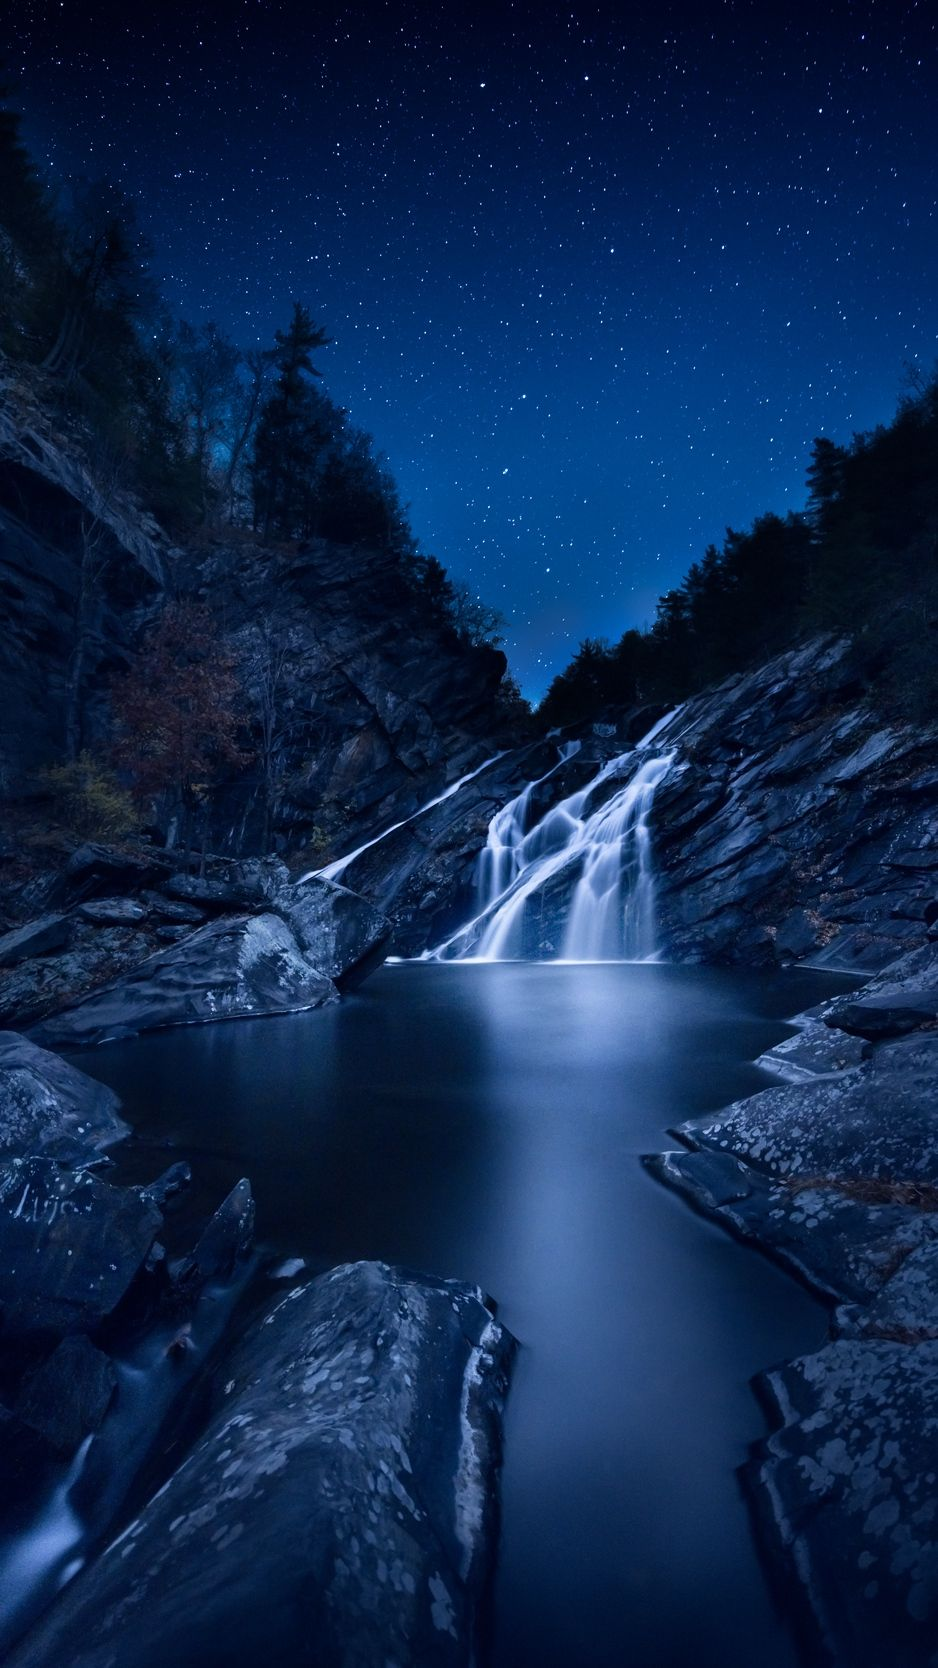 Pin By Payamund On Wallpapers Stone Wallpaper Starry Sky